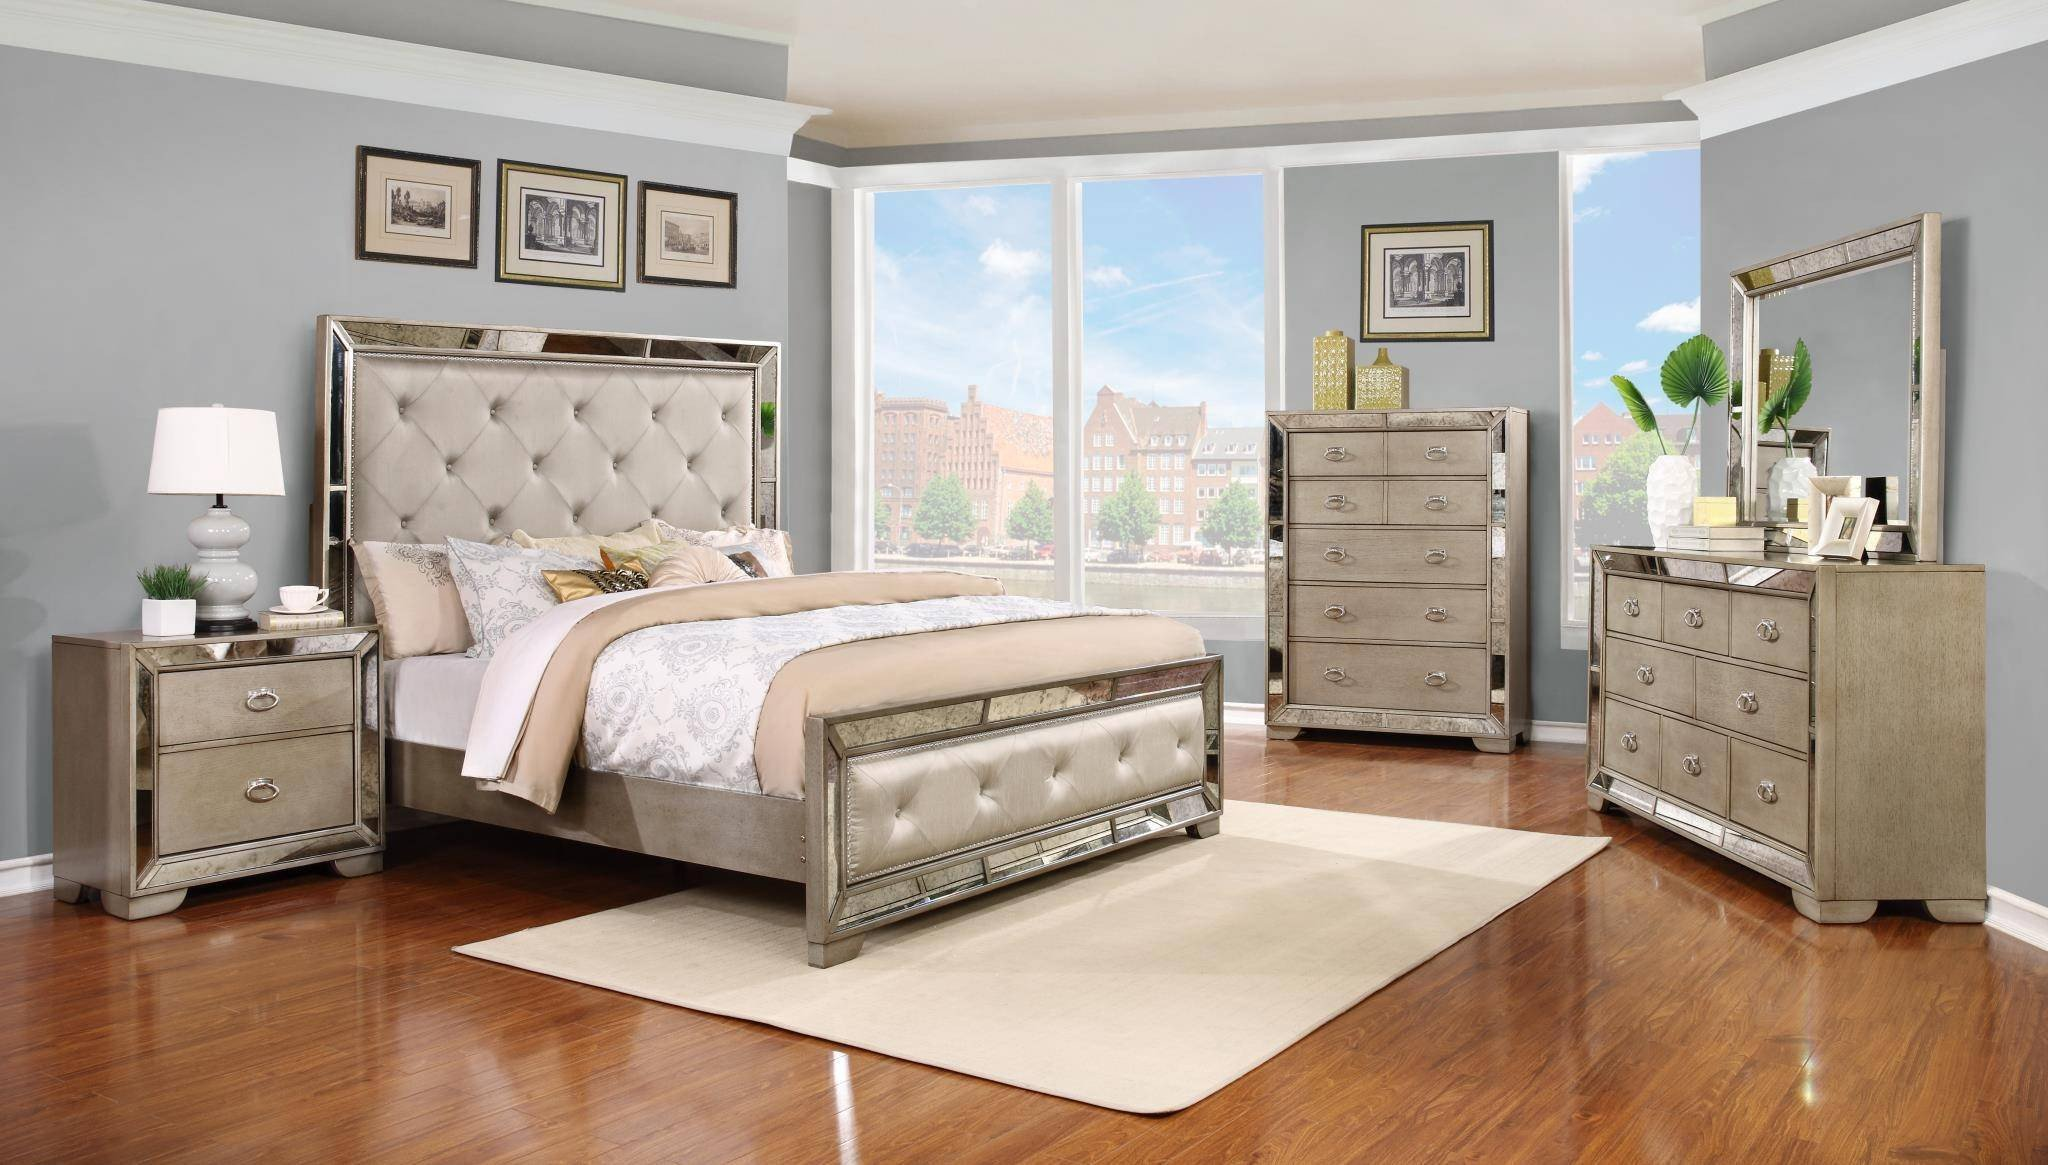 Nice Cheap Bedroom Set Awesome soflex Lilyanna Diamond Tufted Headboard Queen Bedroom Set